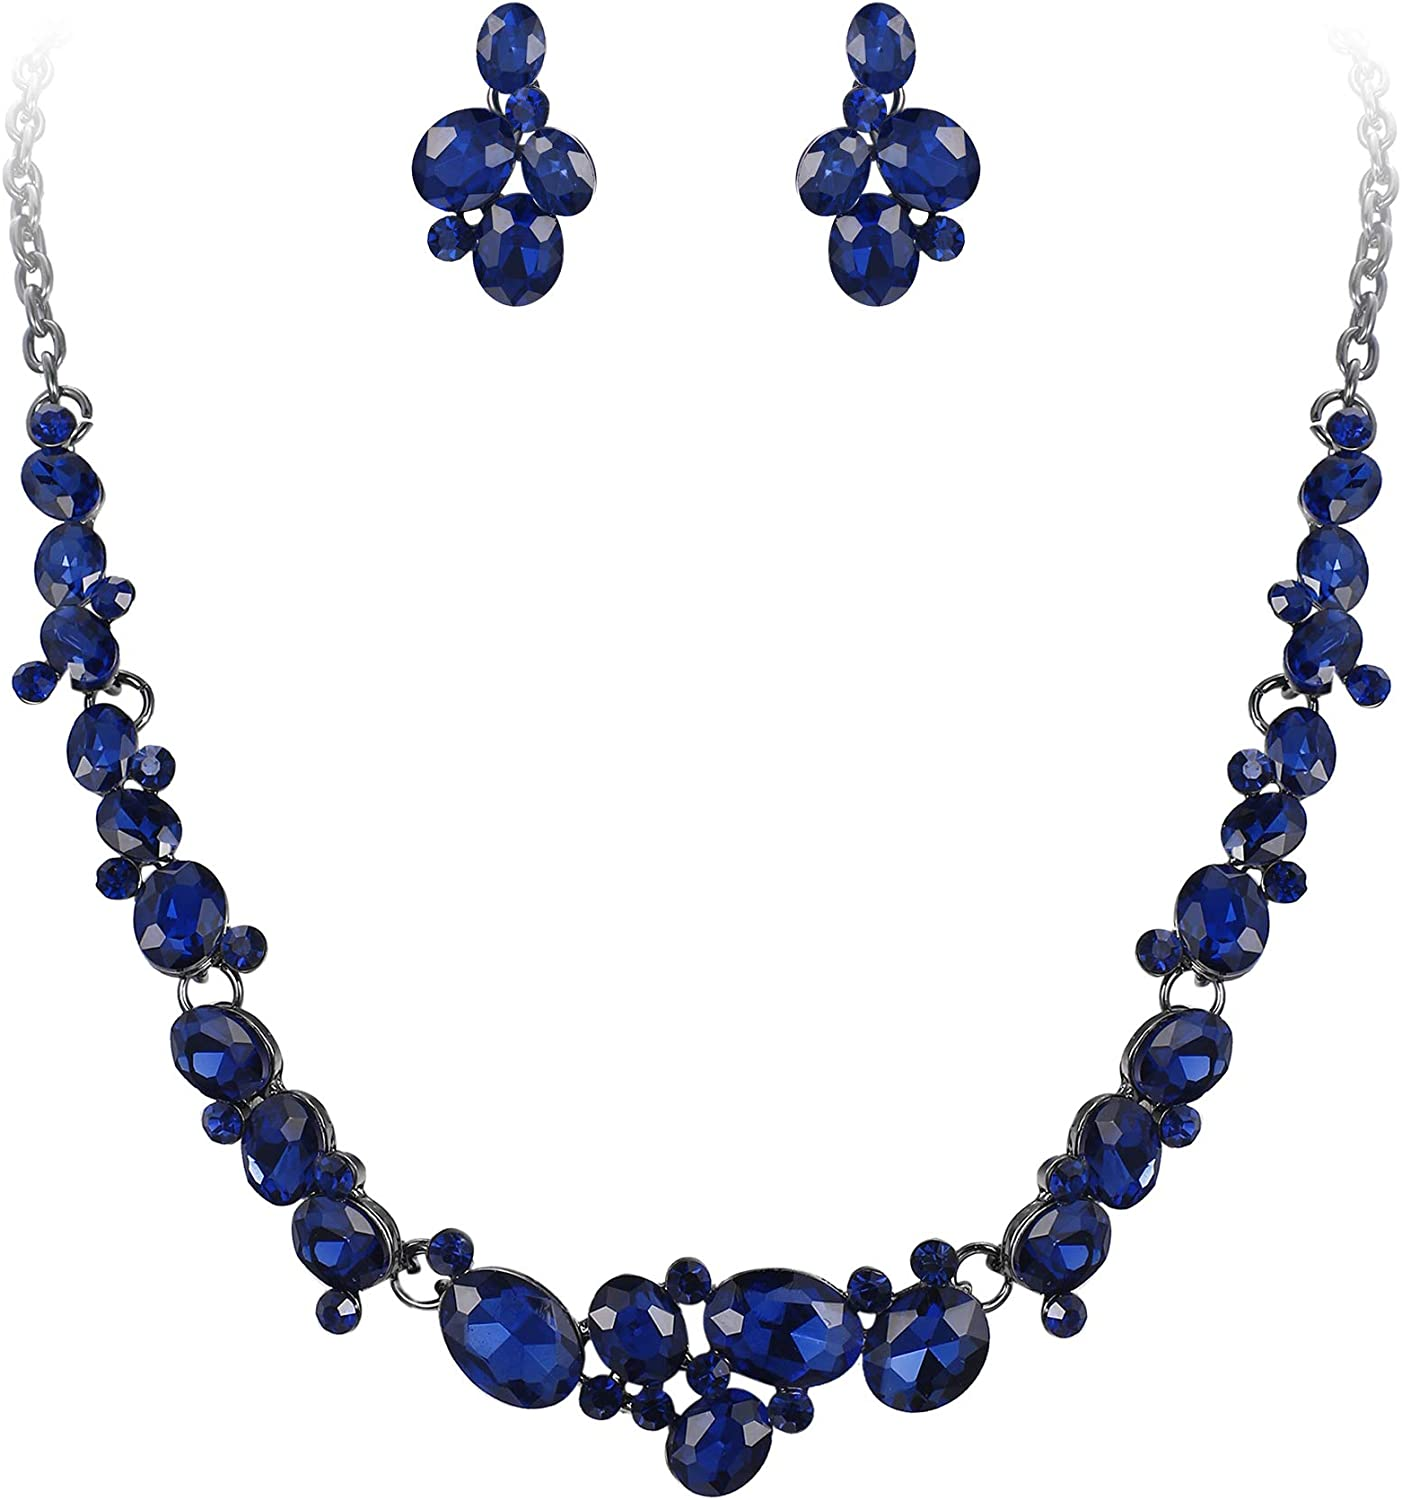 EVER FAITH Women's Oval Austrian Crystal Prom Jewelry Gorgeous Bridal Necklace Earrings Set